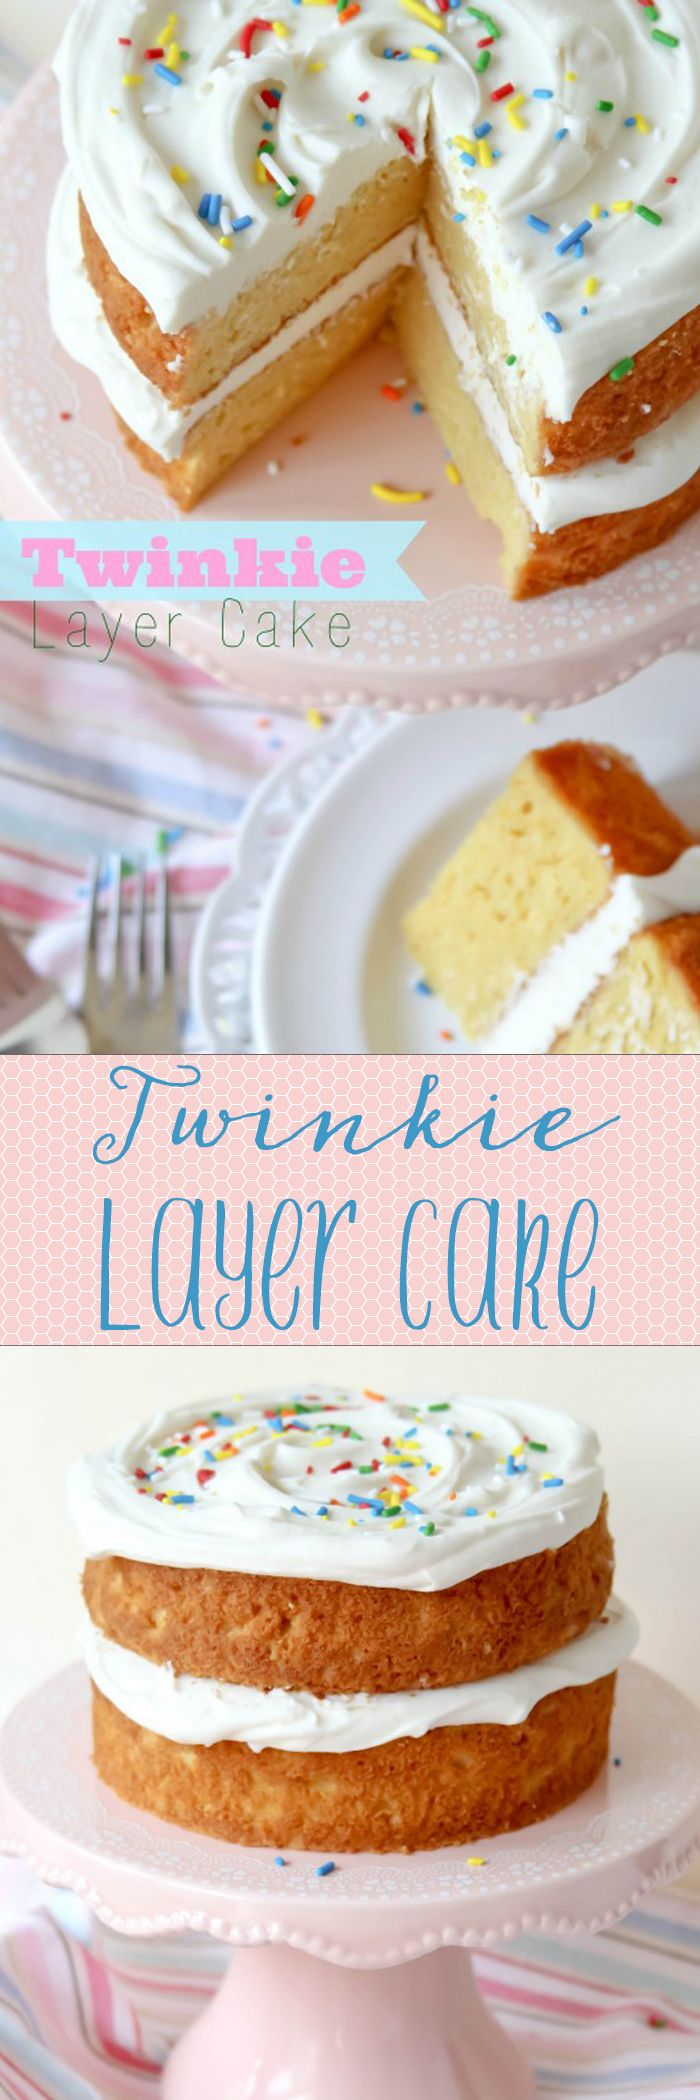 Twinkie Layer Cake -- like eating a GIANT TWINKIE!!! Always a crowd favorite and one of my most popular recipes.